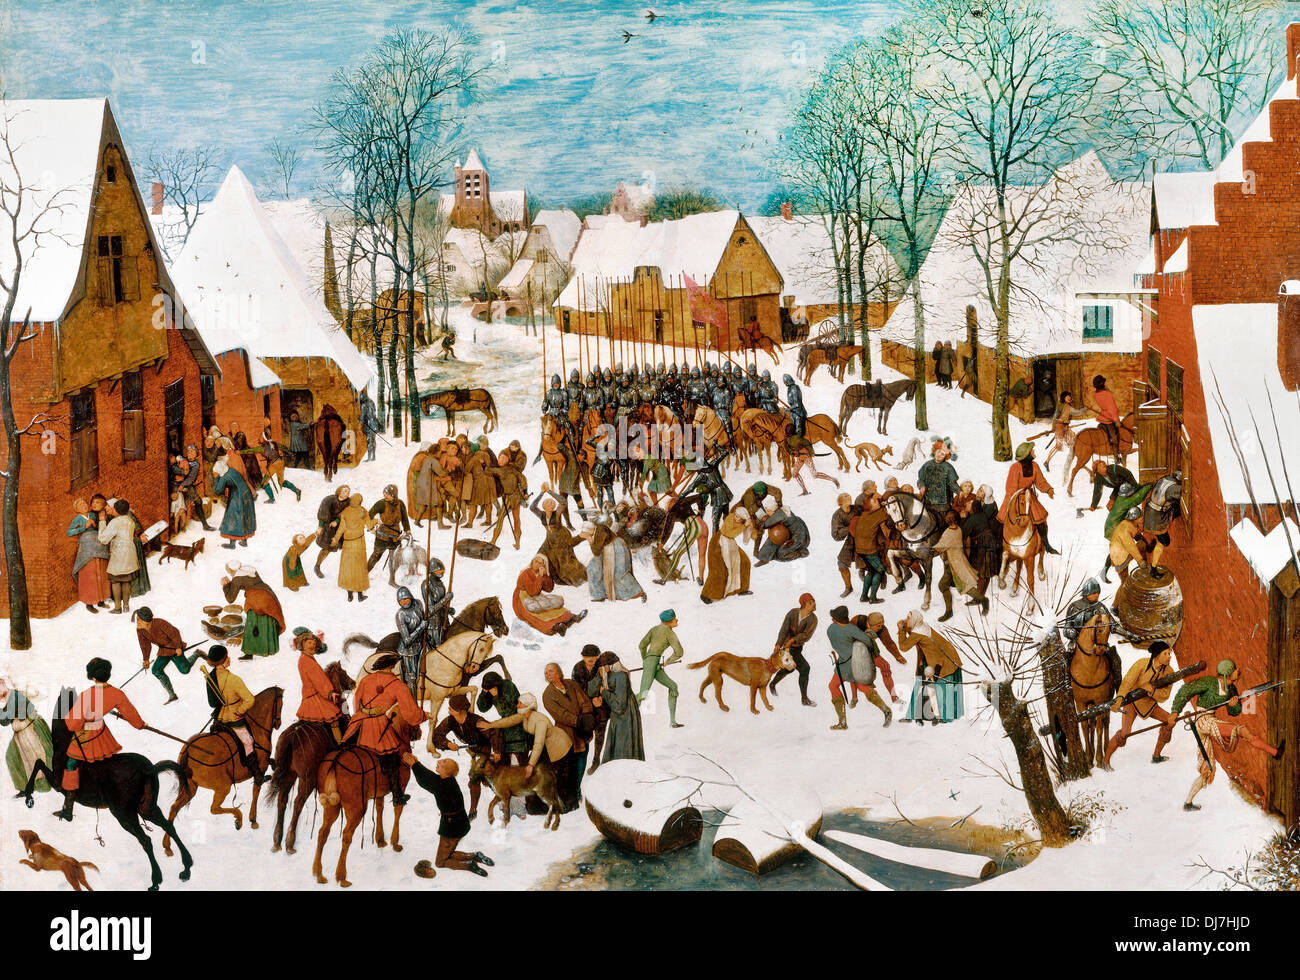 Pieter Brueghel the Elder, Massacre of the Innocents 1565-1567 Oil on panel. Royal Collection of the United Kingdom. - Stock Image